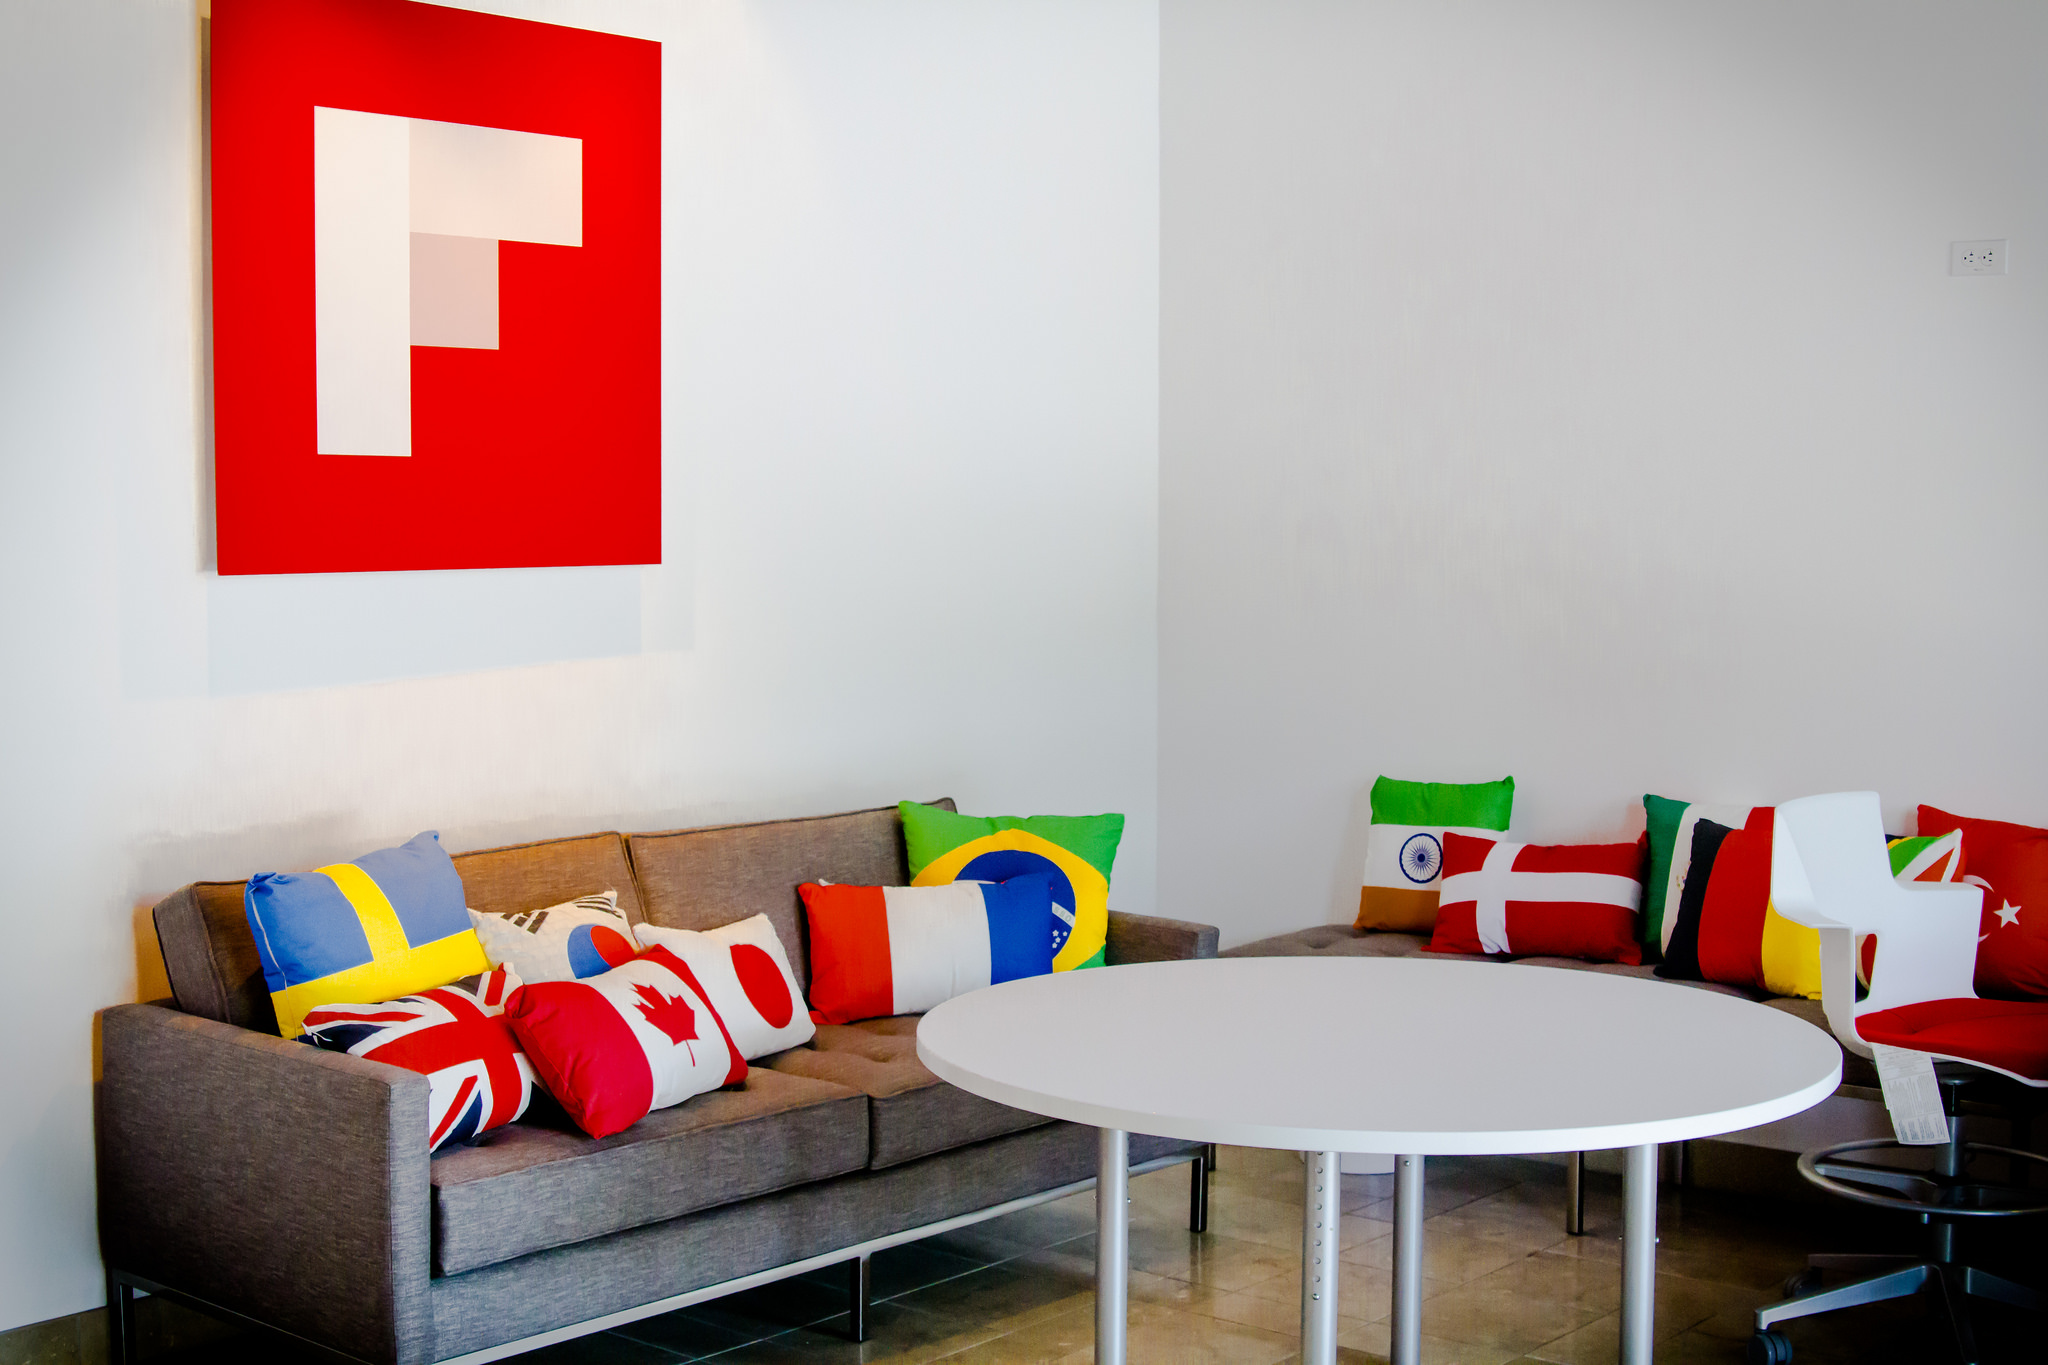 Inside Flipboard's Palo Alto, Calif. office is a space dedicated to the international users of its social content curation app.